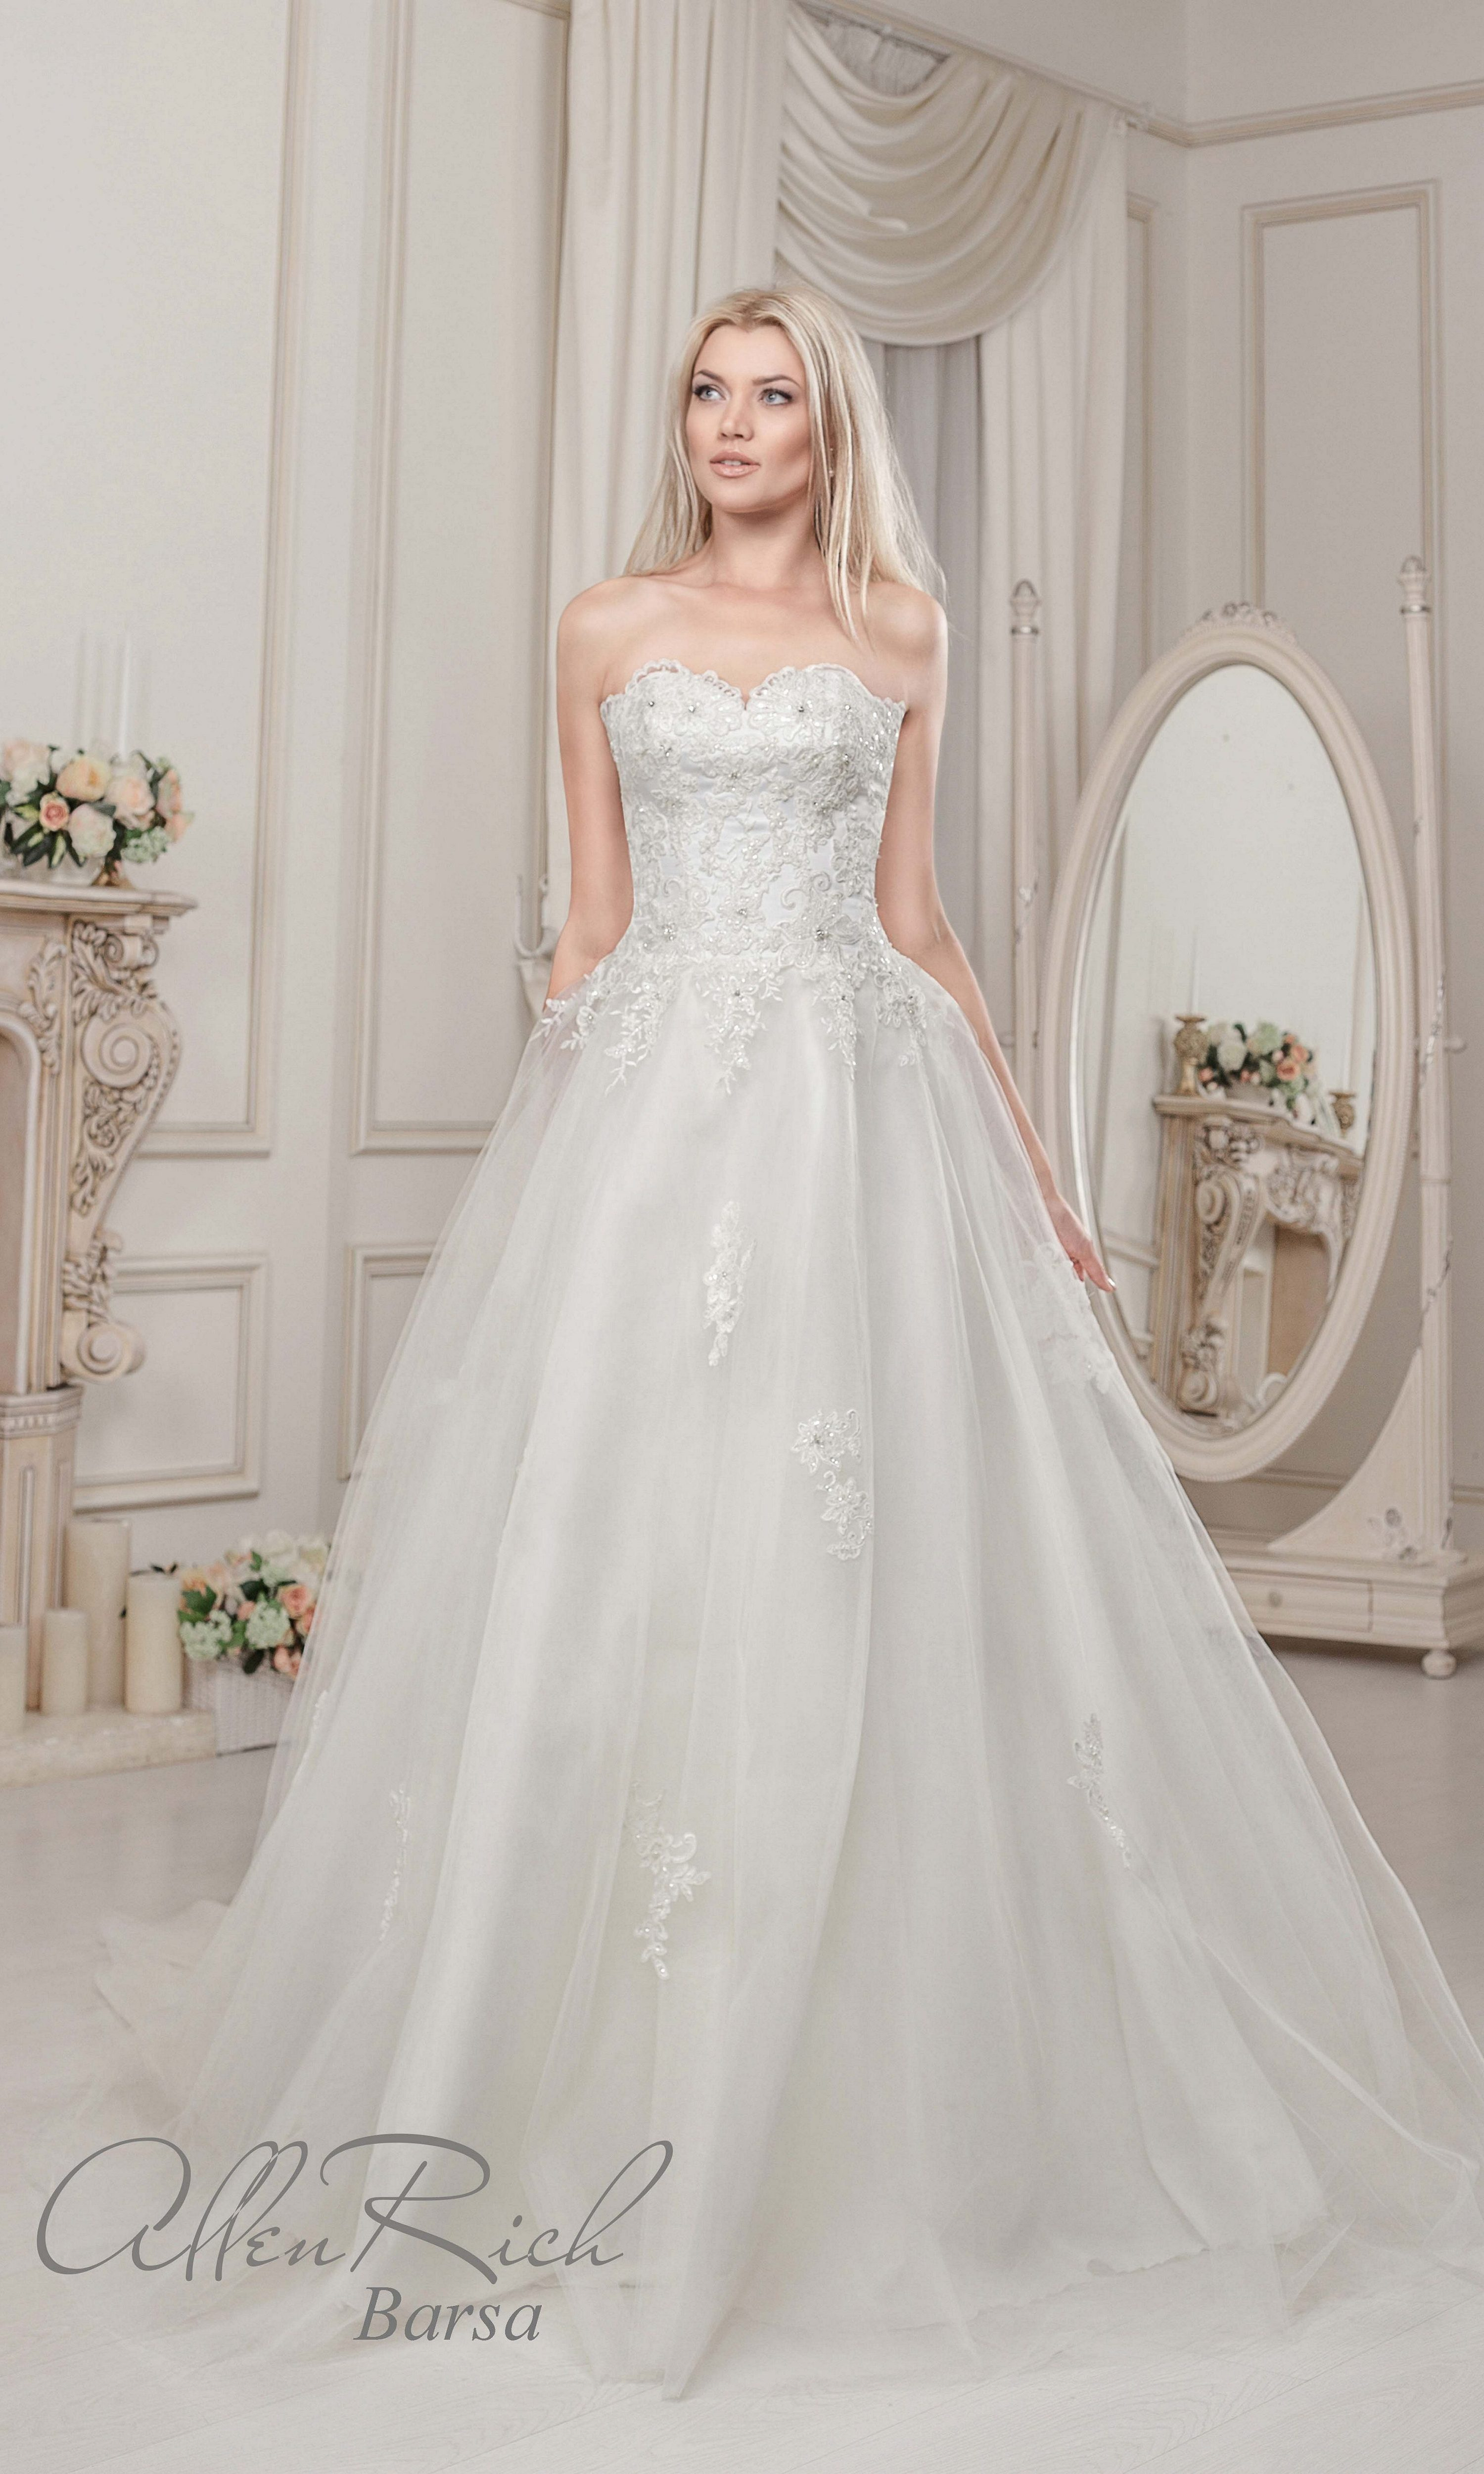 Barsa wedding dress